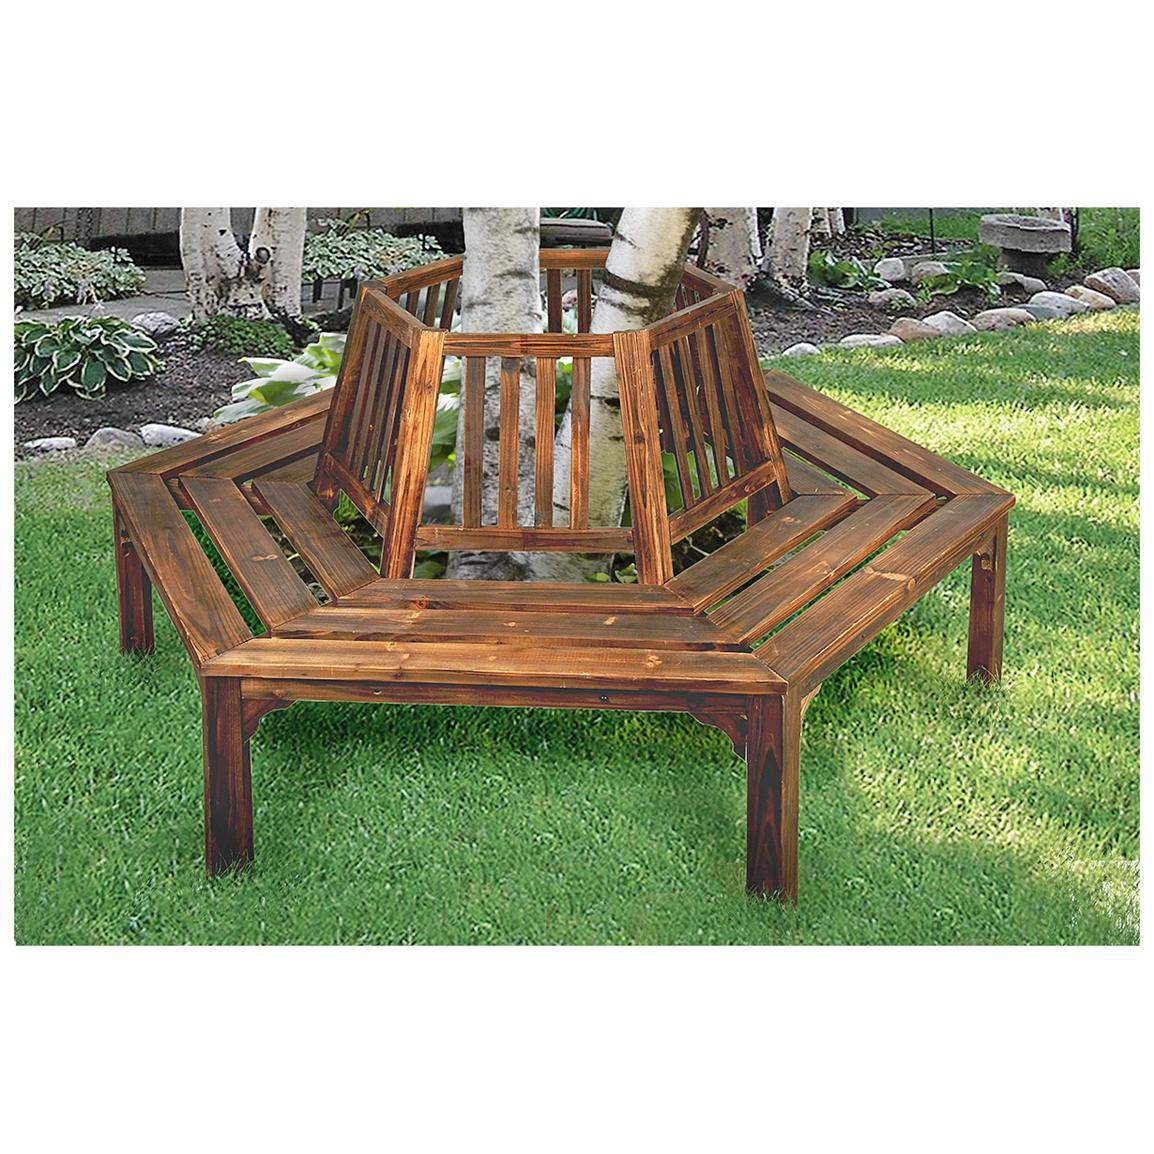 Wrap Bench wooden tree wrap bench with backrest - 581061, patio furniture at